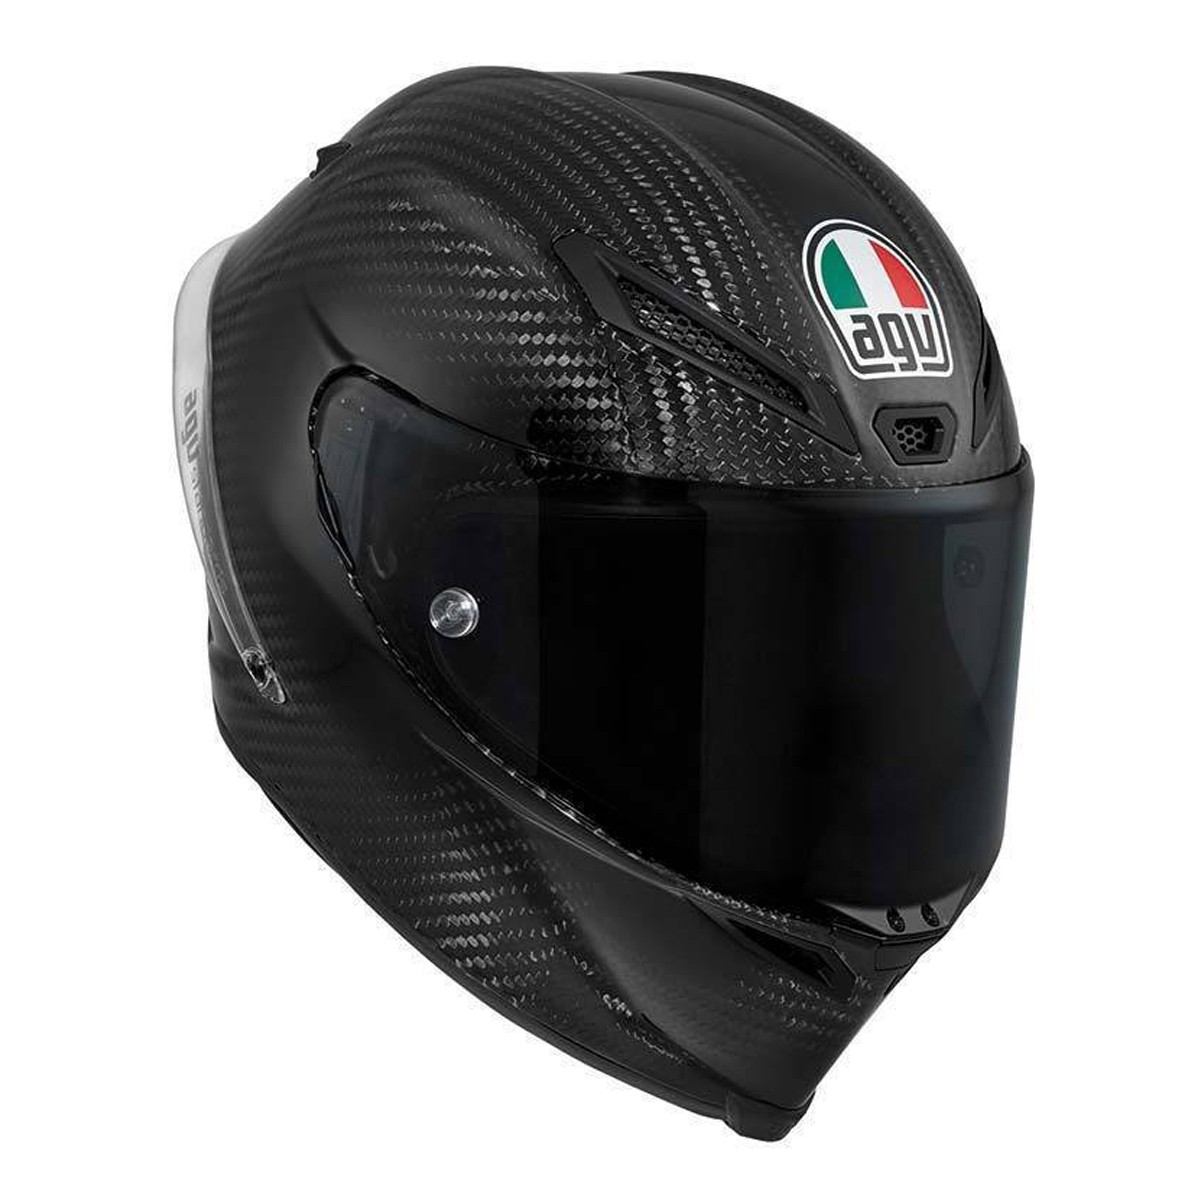 agv pista gp carbon helmet full face helmets. Black Bedroom Furniture Sets. Home Design Ideas